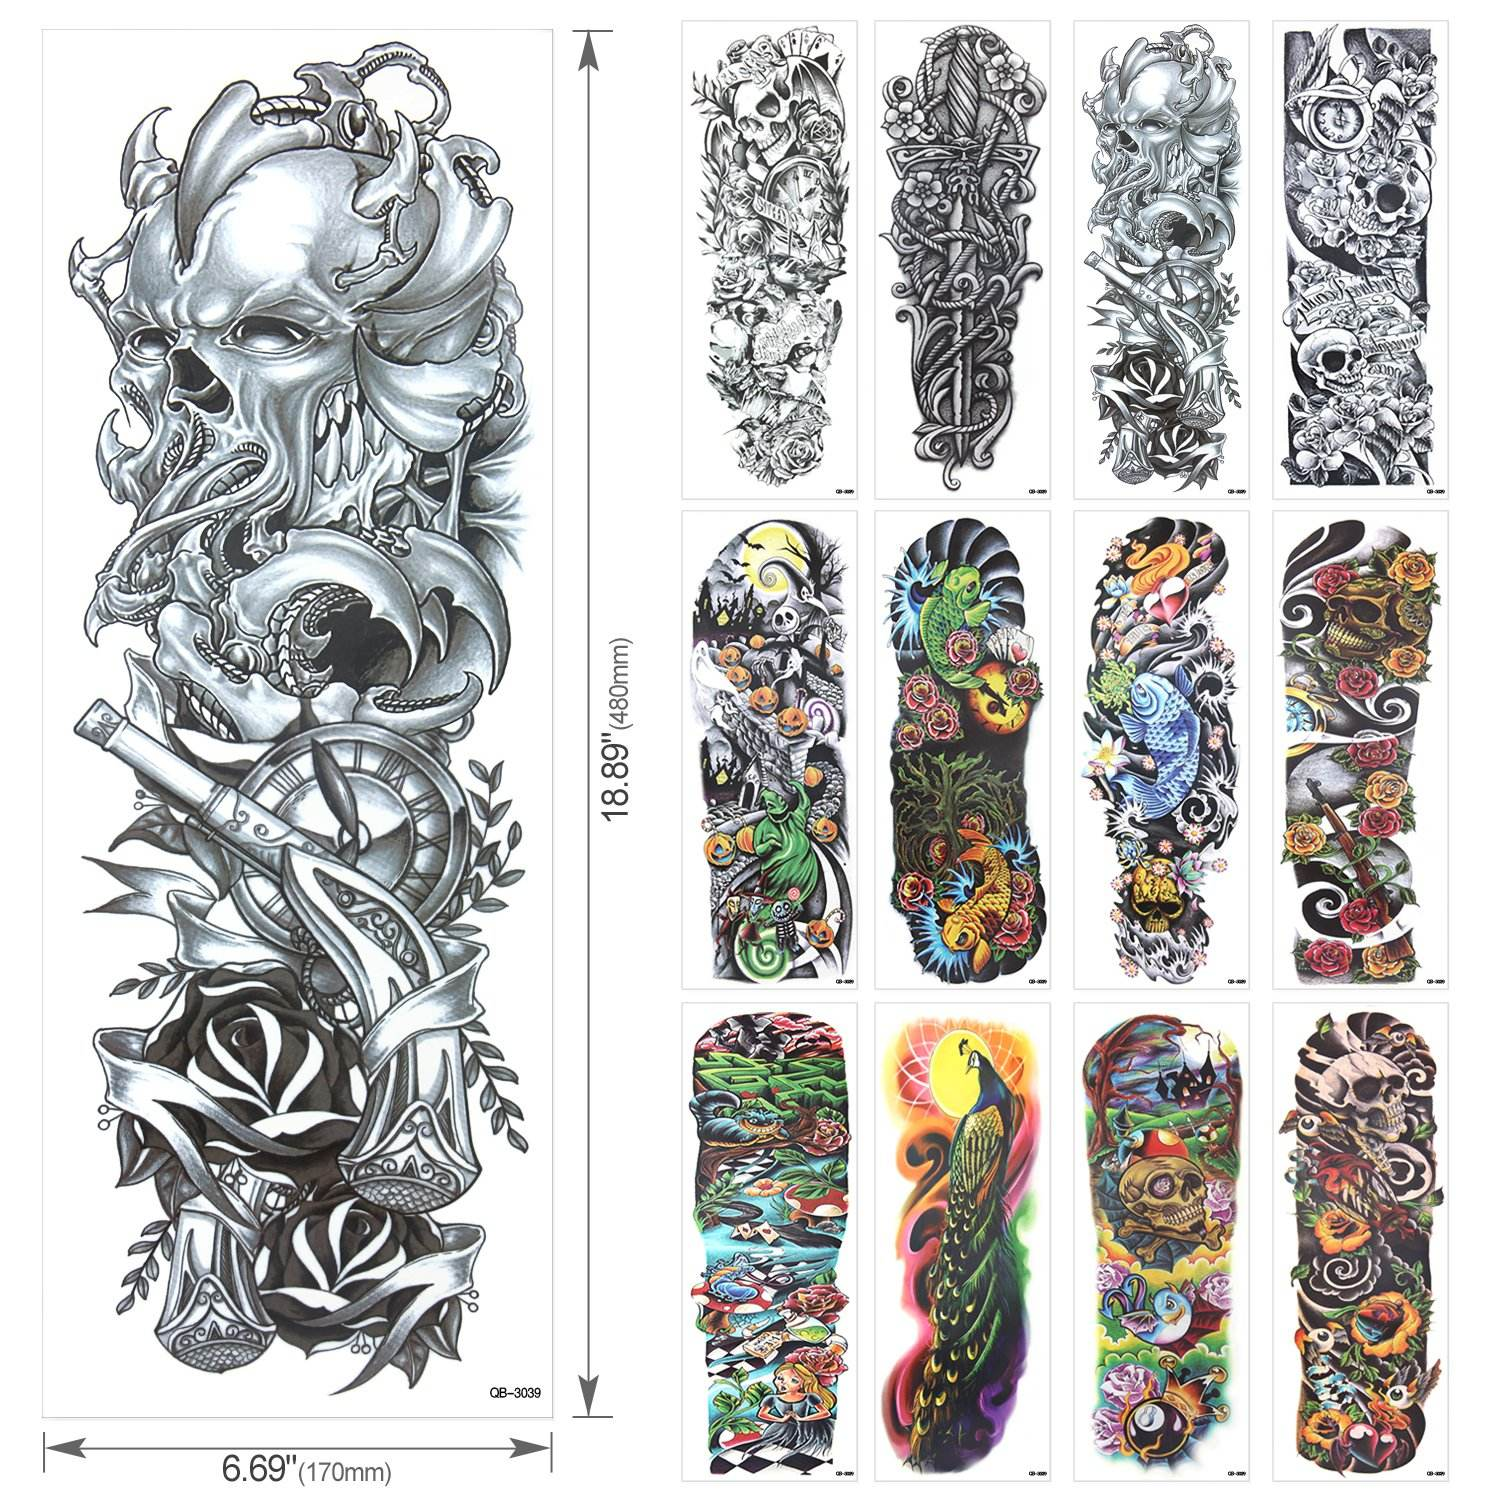 Full Arm Temporary Tattoo, Temporary Tattoo Black tattoo Body Stickers for Man Women